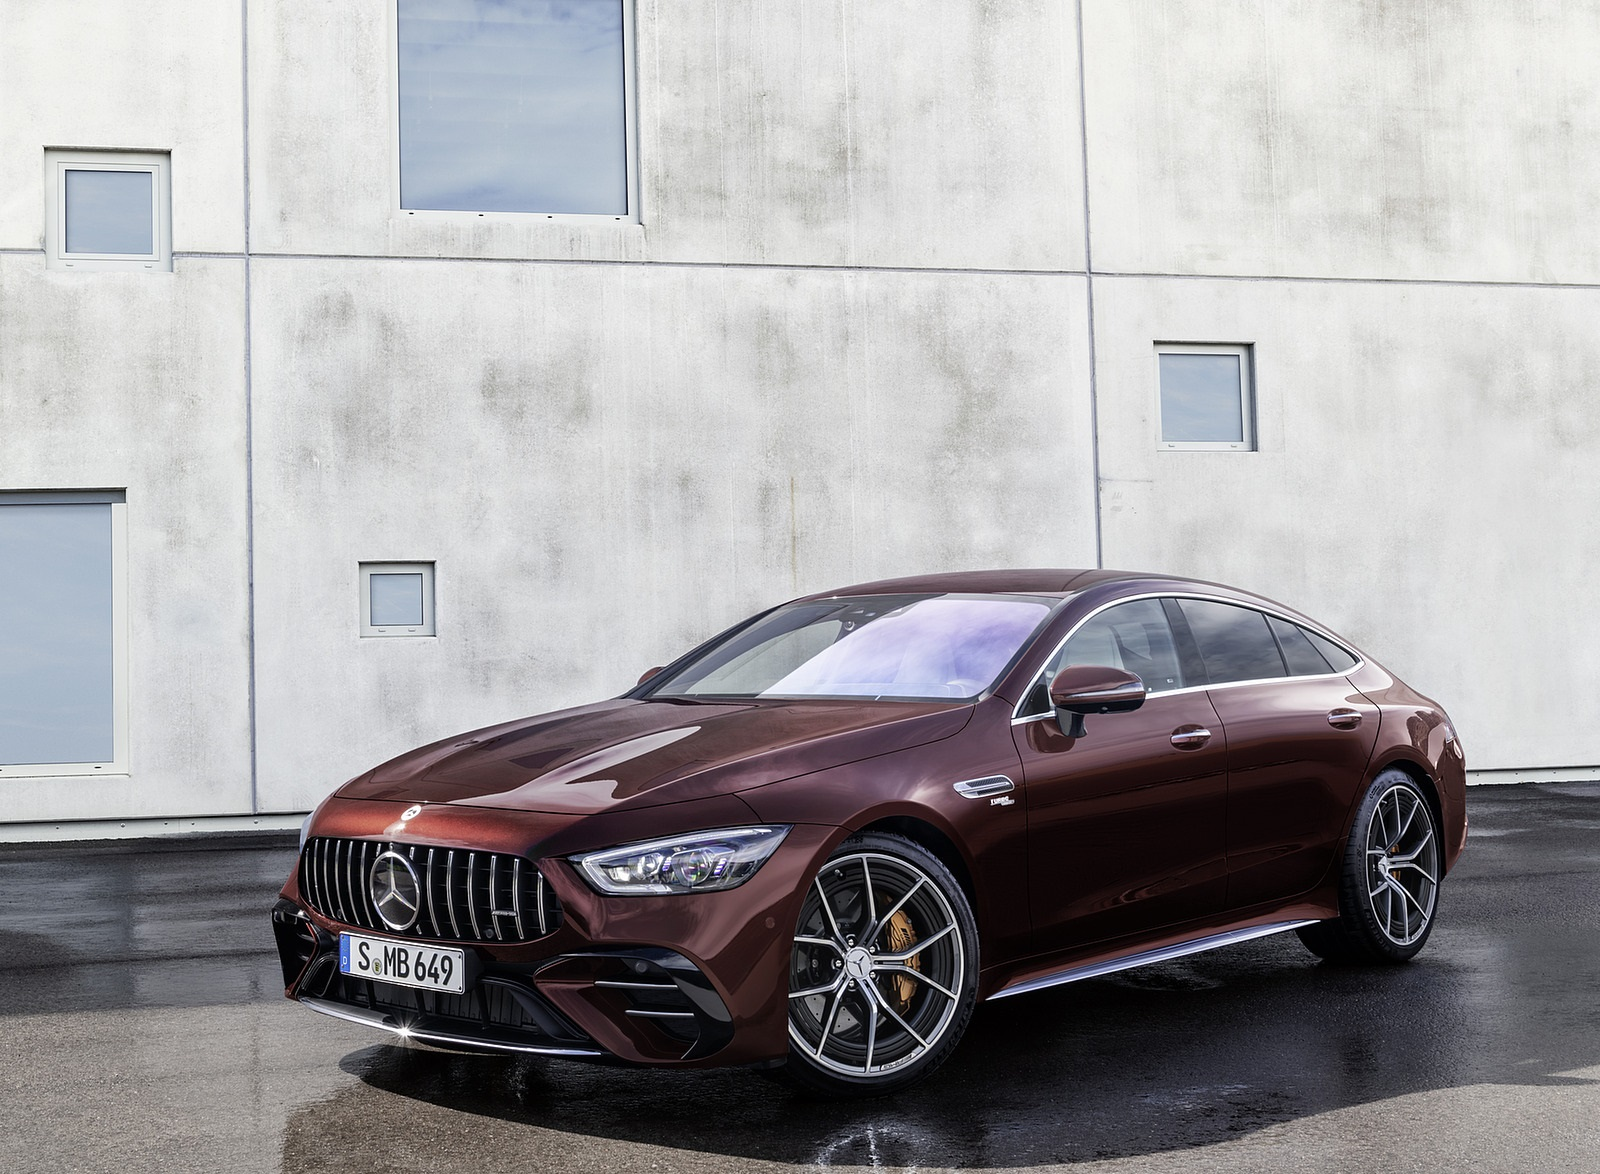 2022 Mercedes-AMG GT 53 4MATIC+ 4-Door Coupe (Color: Rubellite Red) Front Three-Quarter Wallpapers (6)